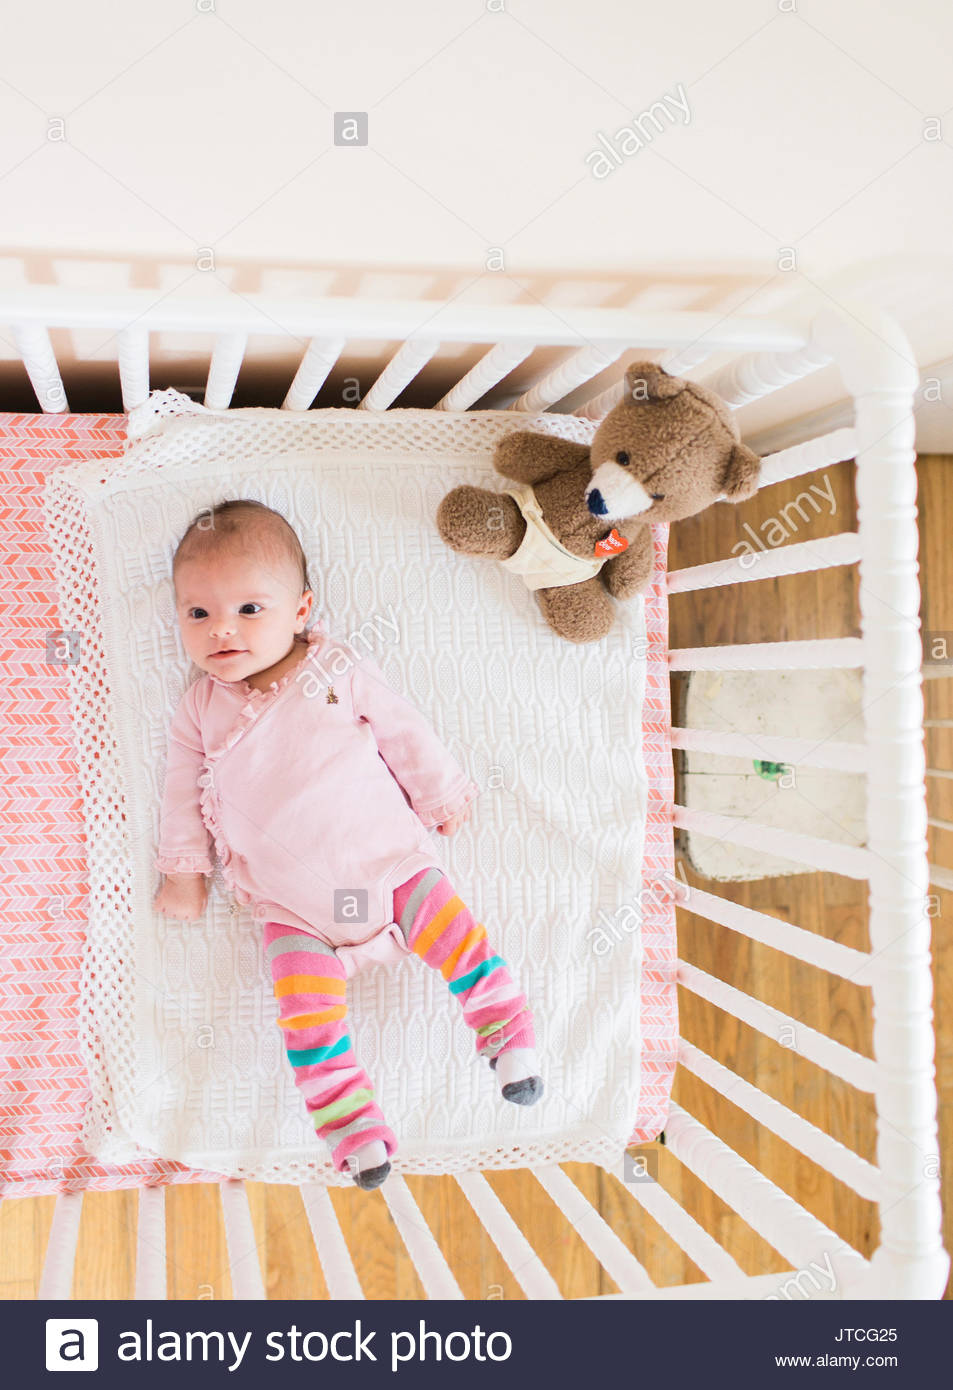 ef2be2f4f High angle view of smiling baby wearing pink onesie lying on her back in a  white crib, teddy bear sitting in corner. Mint Images Limited / Alamy Stock  Photo